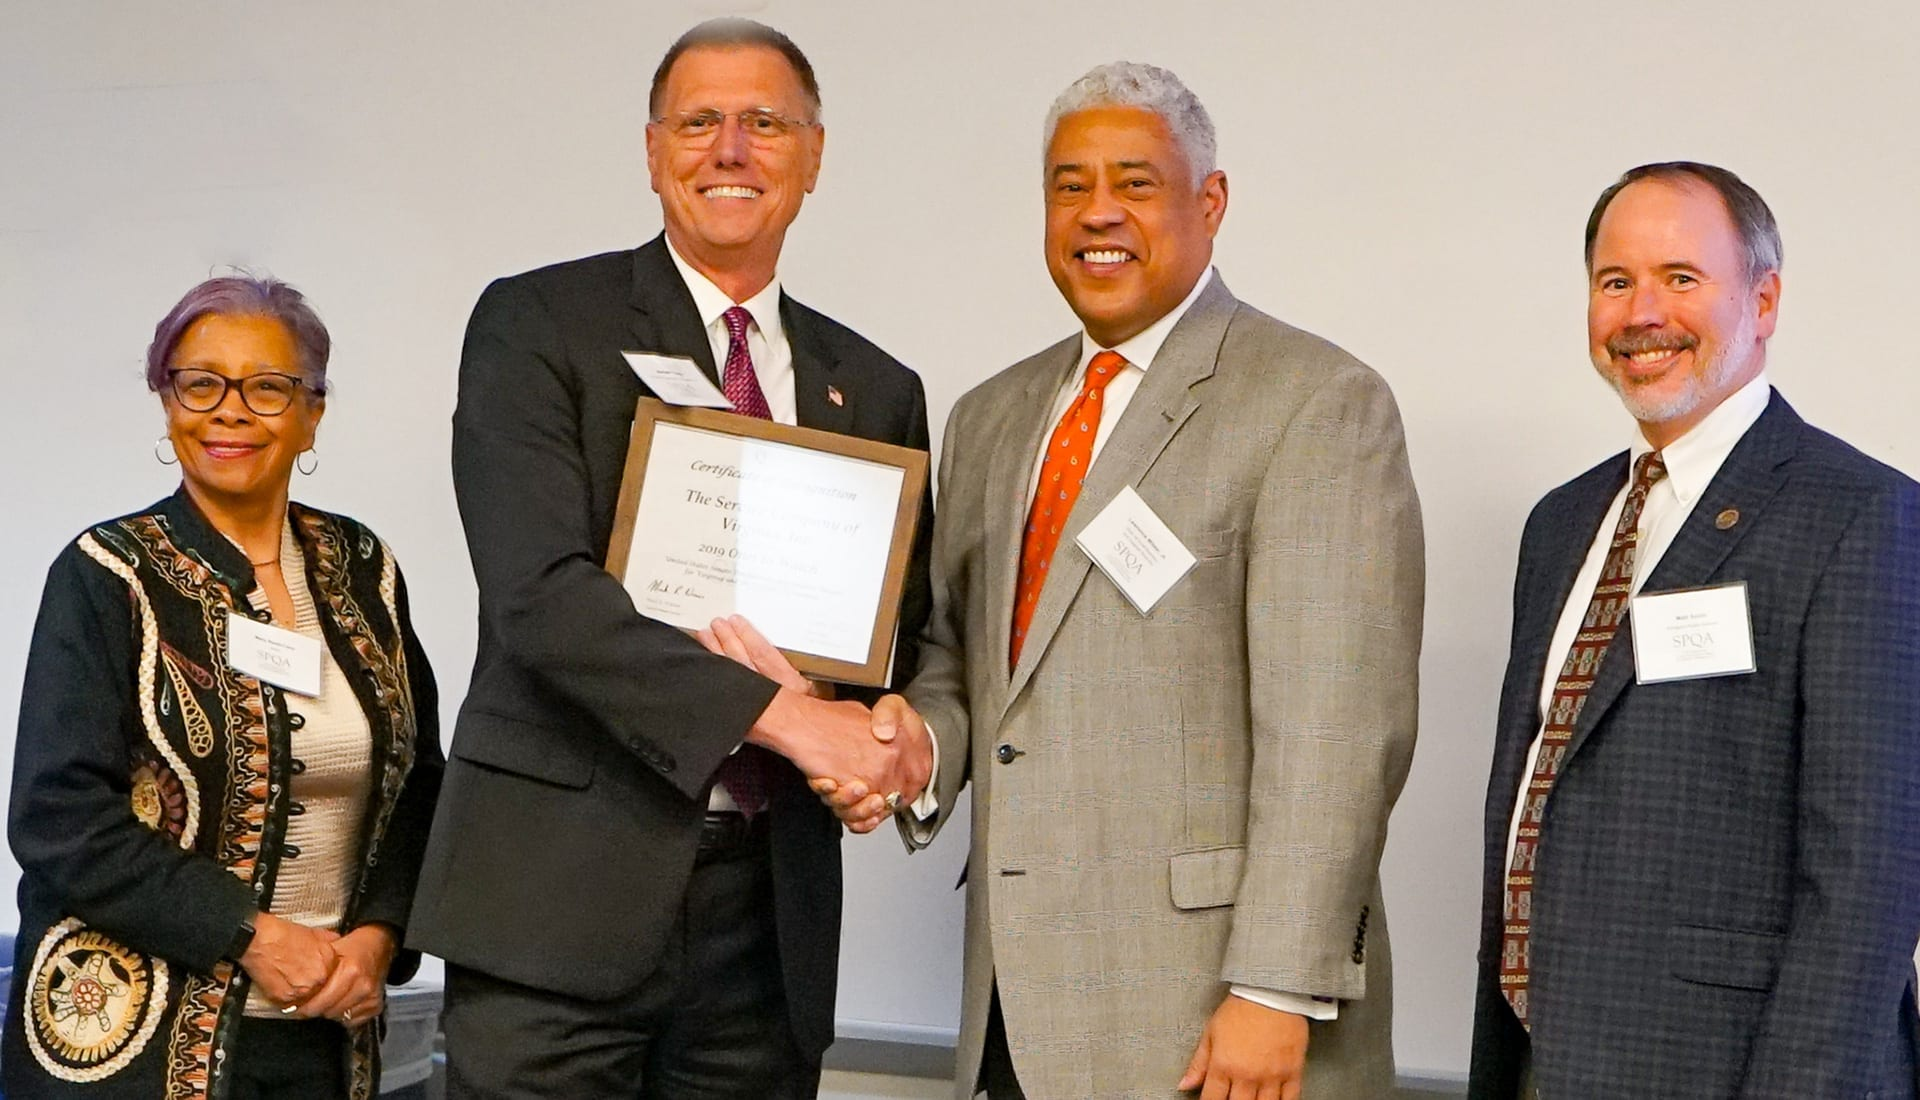 The Service Company Mike Young SPQA Award